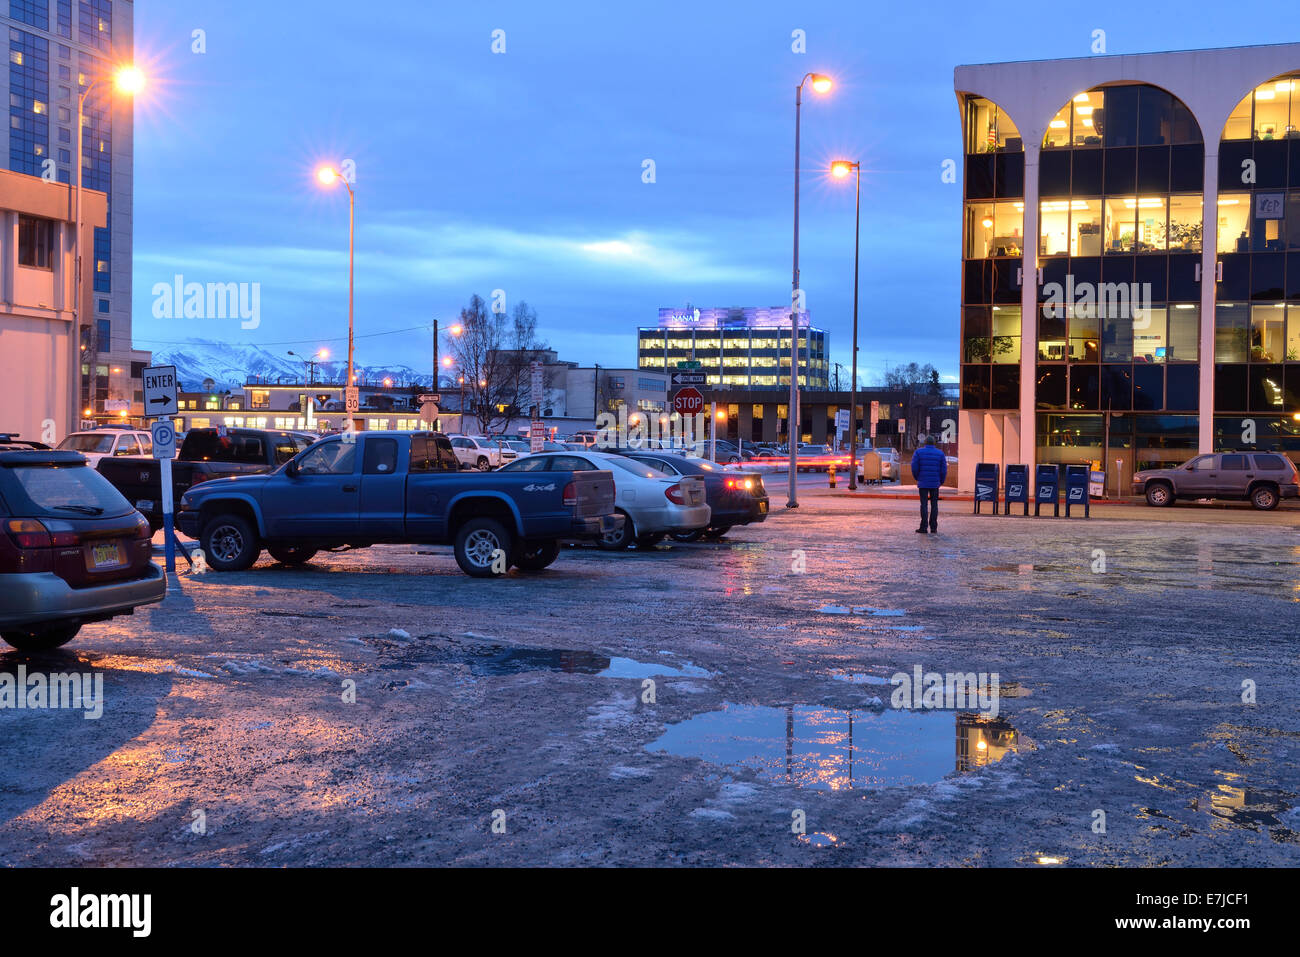 USA, United States, America, Alaska, Anchorage, square, dusk, city, night, downtown, Americana, parking lot, winter, - Stock Image